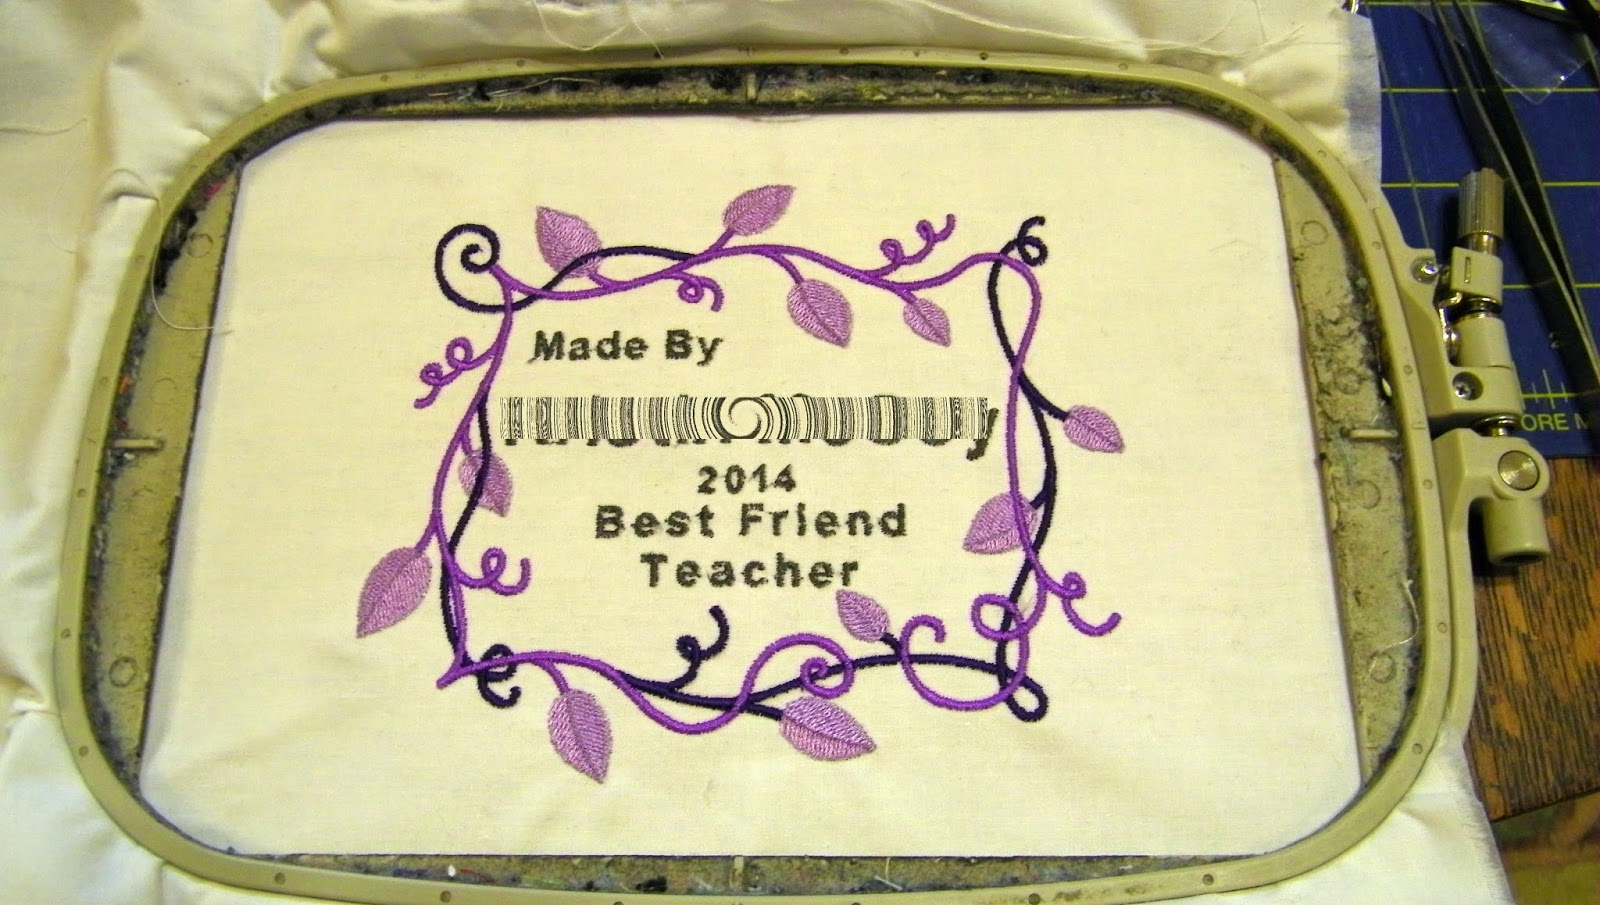 I Just Love The Idea Of Creating A Label To Match The Quilt And To Document